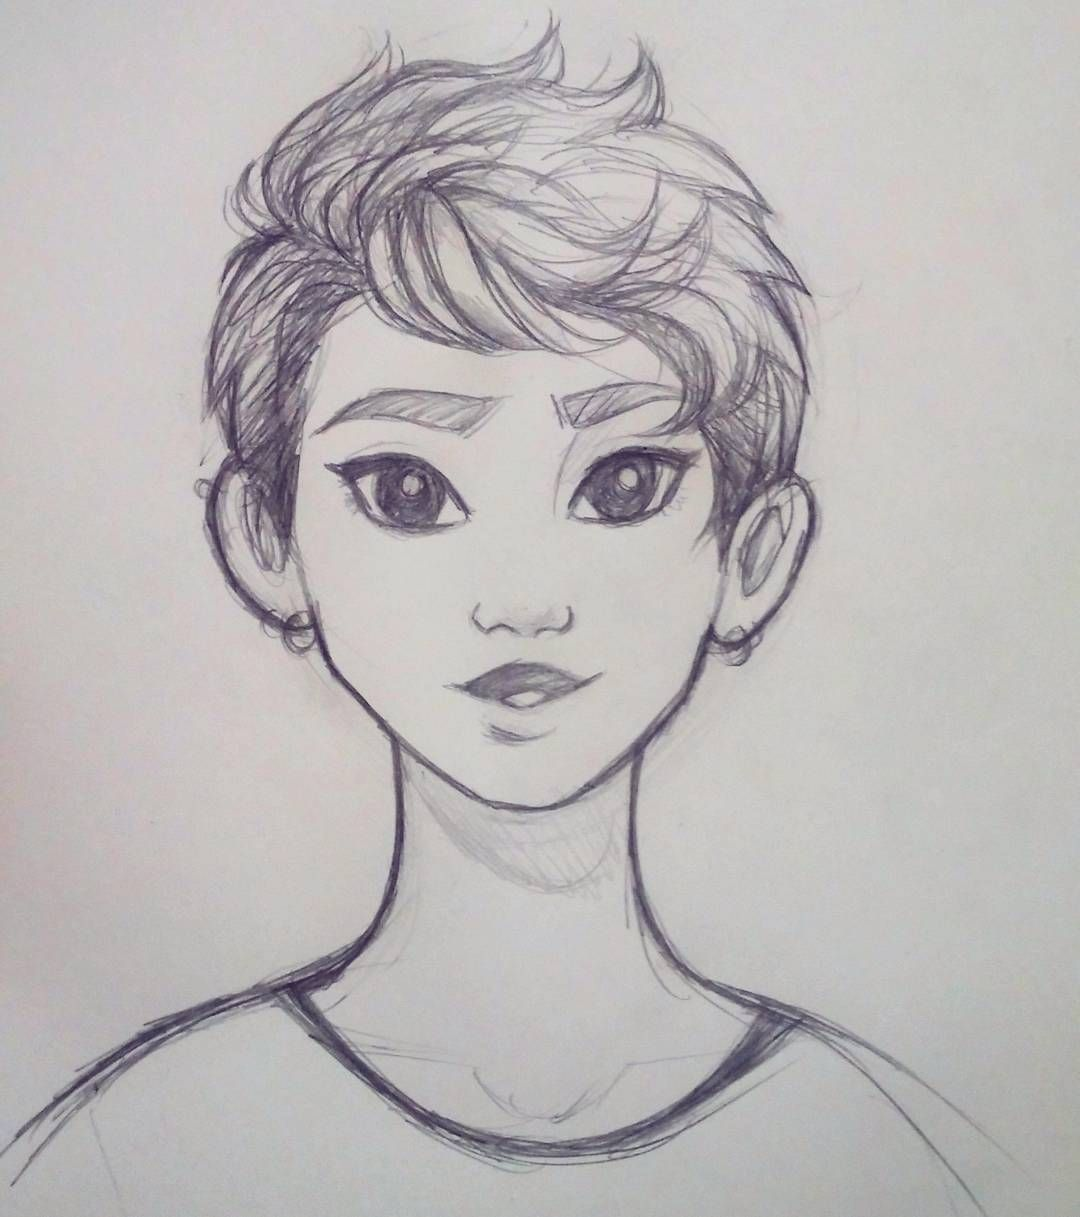 3 007 Otmetok Nravitsya 30 Kommentariev Art By Elliee V Instagram Quick Sketch Of A Girl With S Girl Drawing Sketches Drawings Character Design Sketches